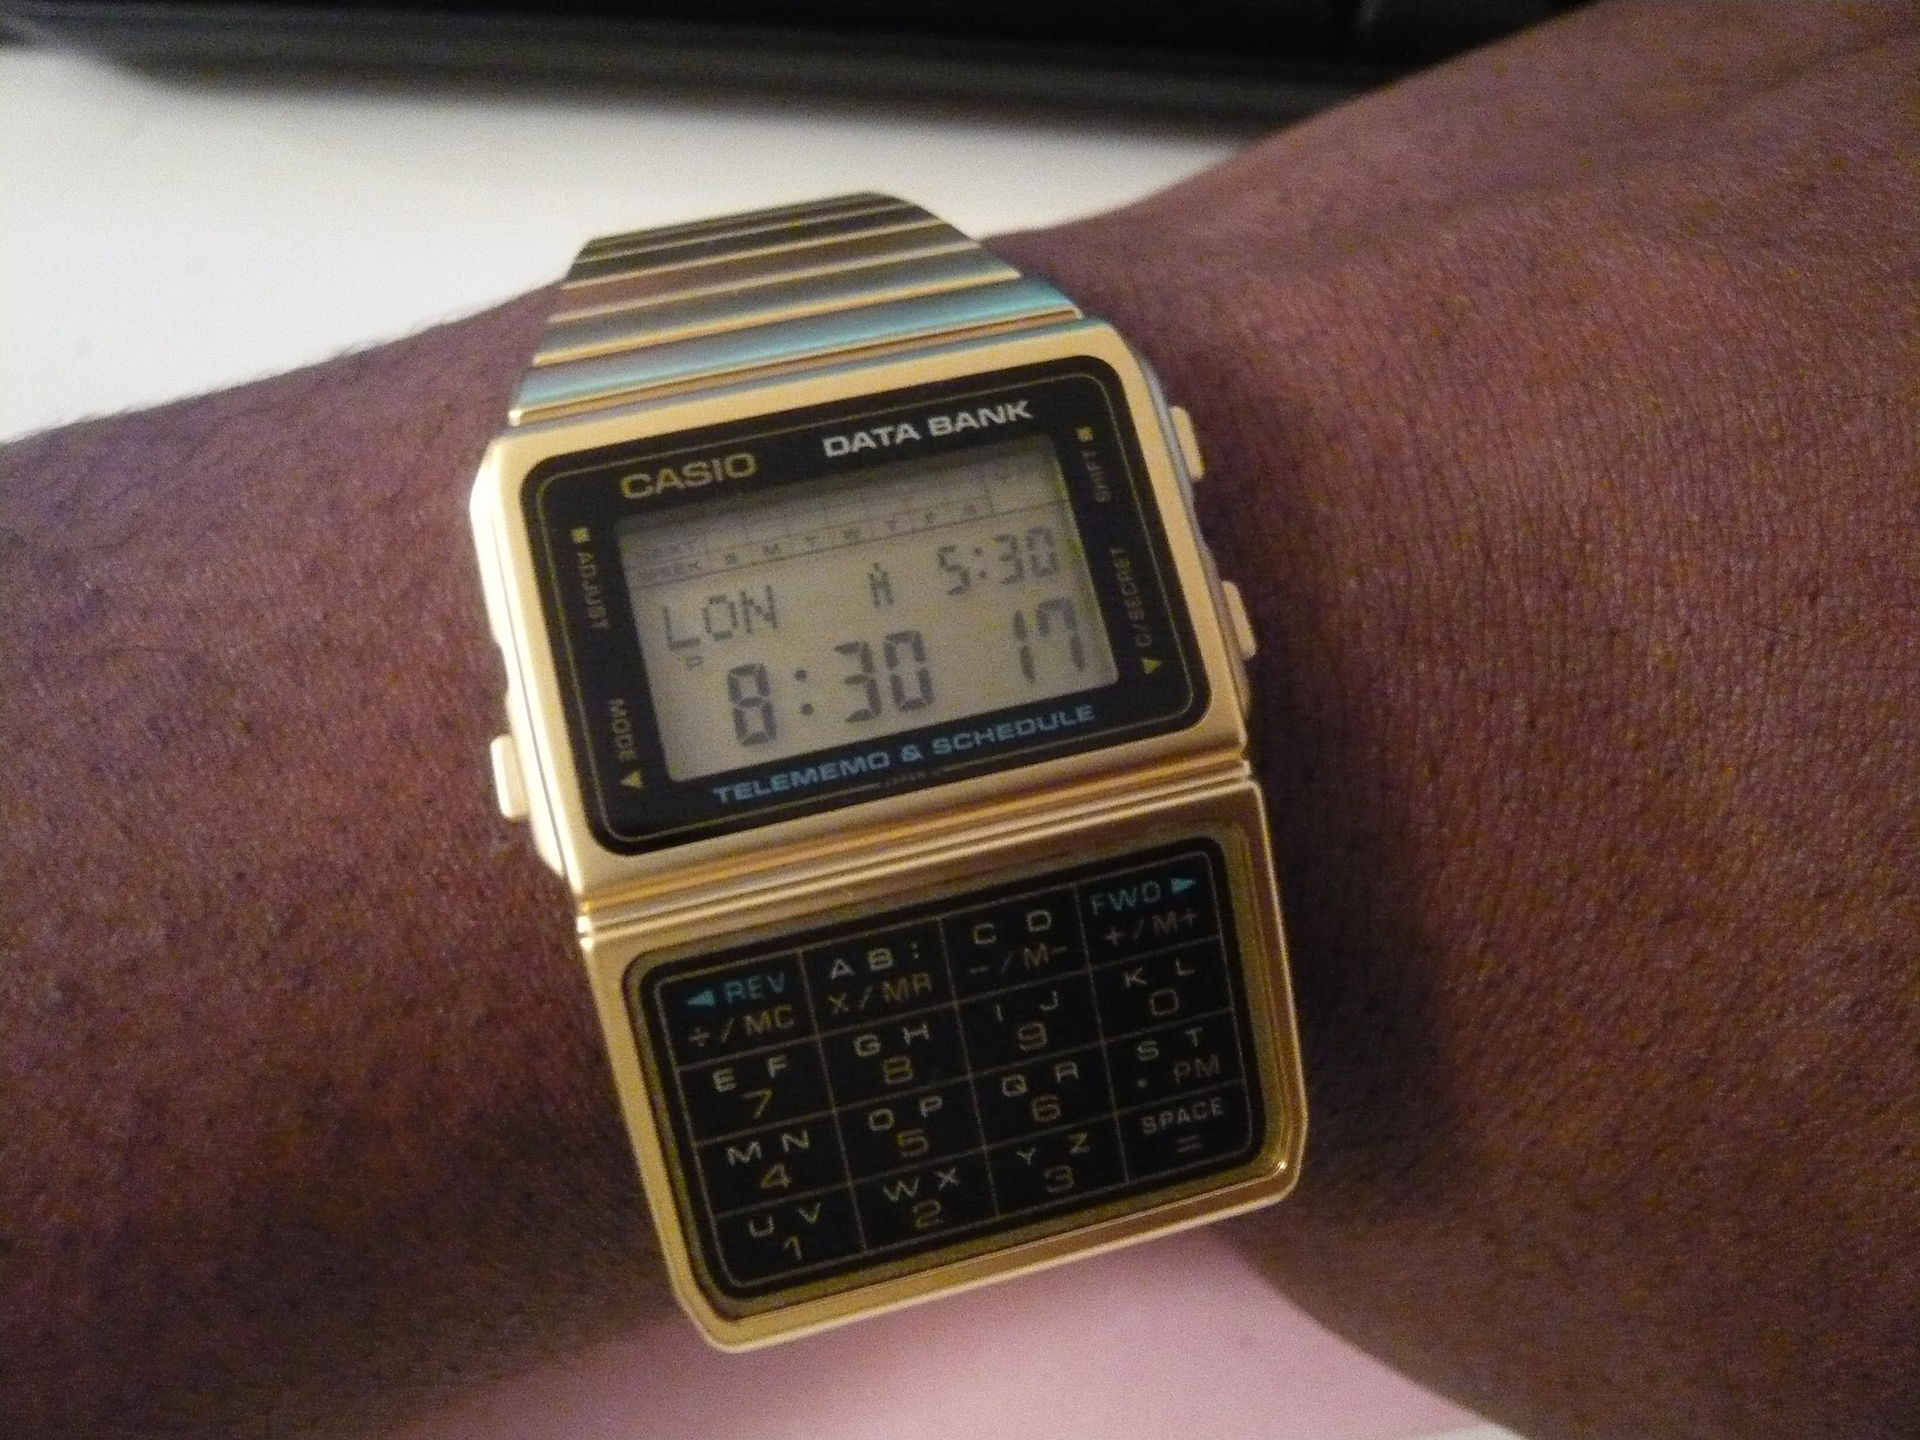 Casio_DATA_BANK_watch